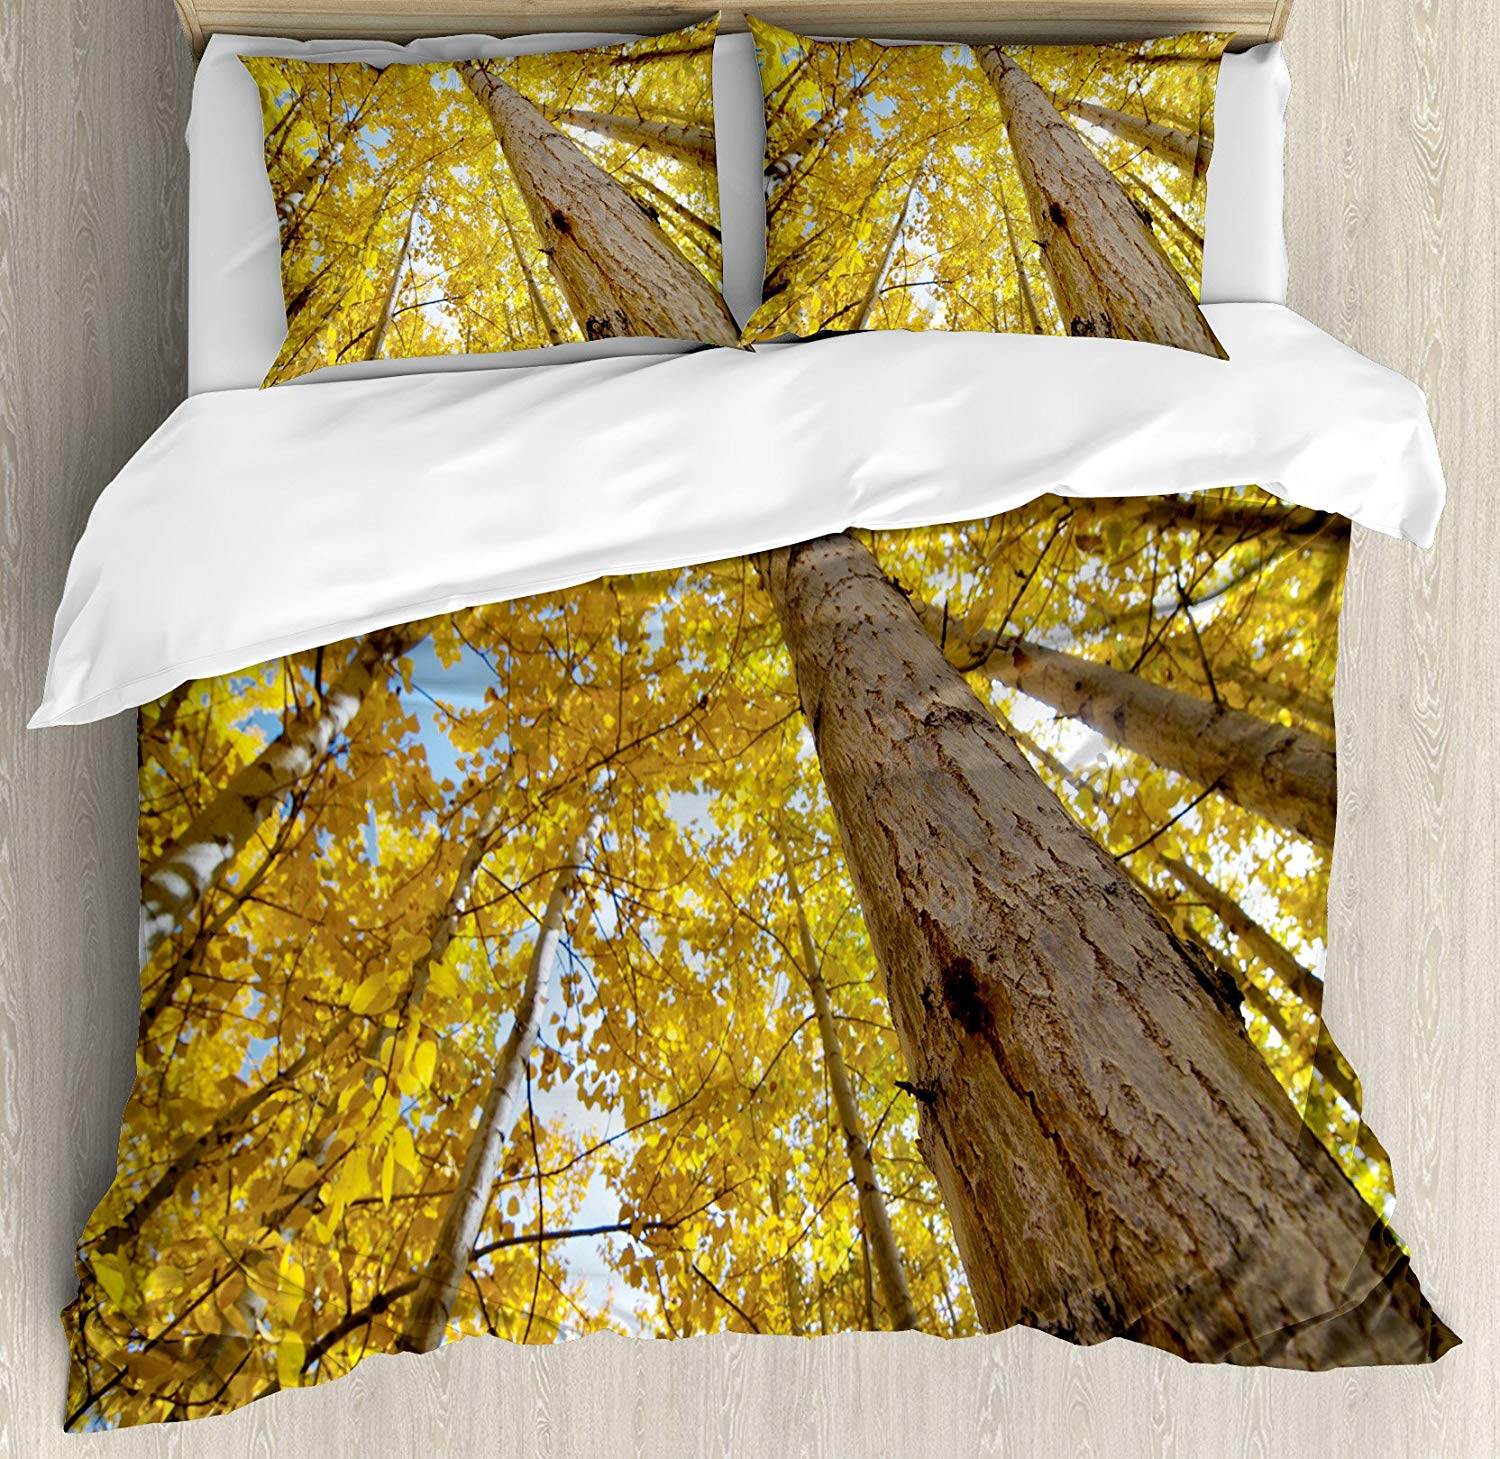 Forest Home Decor Duvet Cover Set Up View Of Fall Aspen